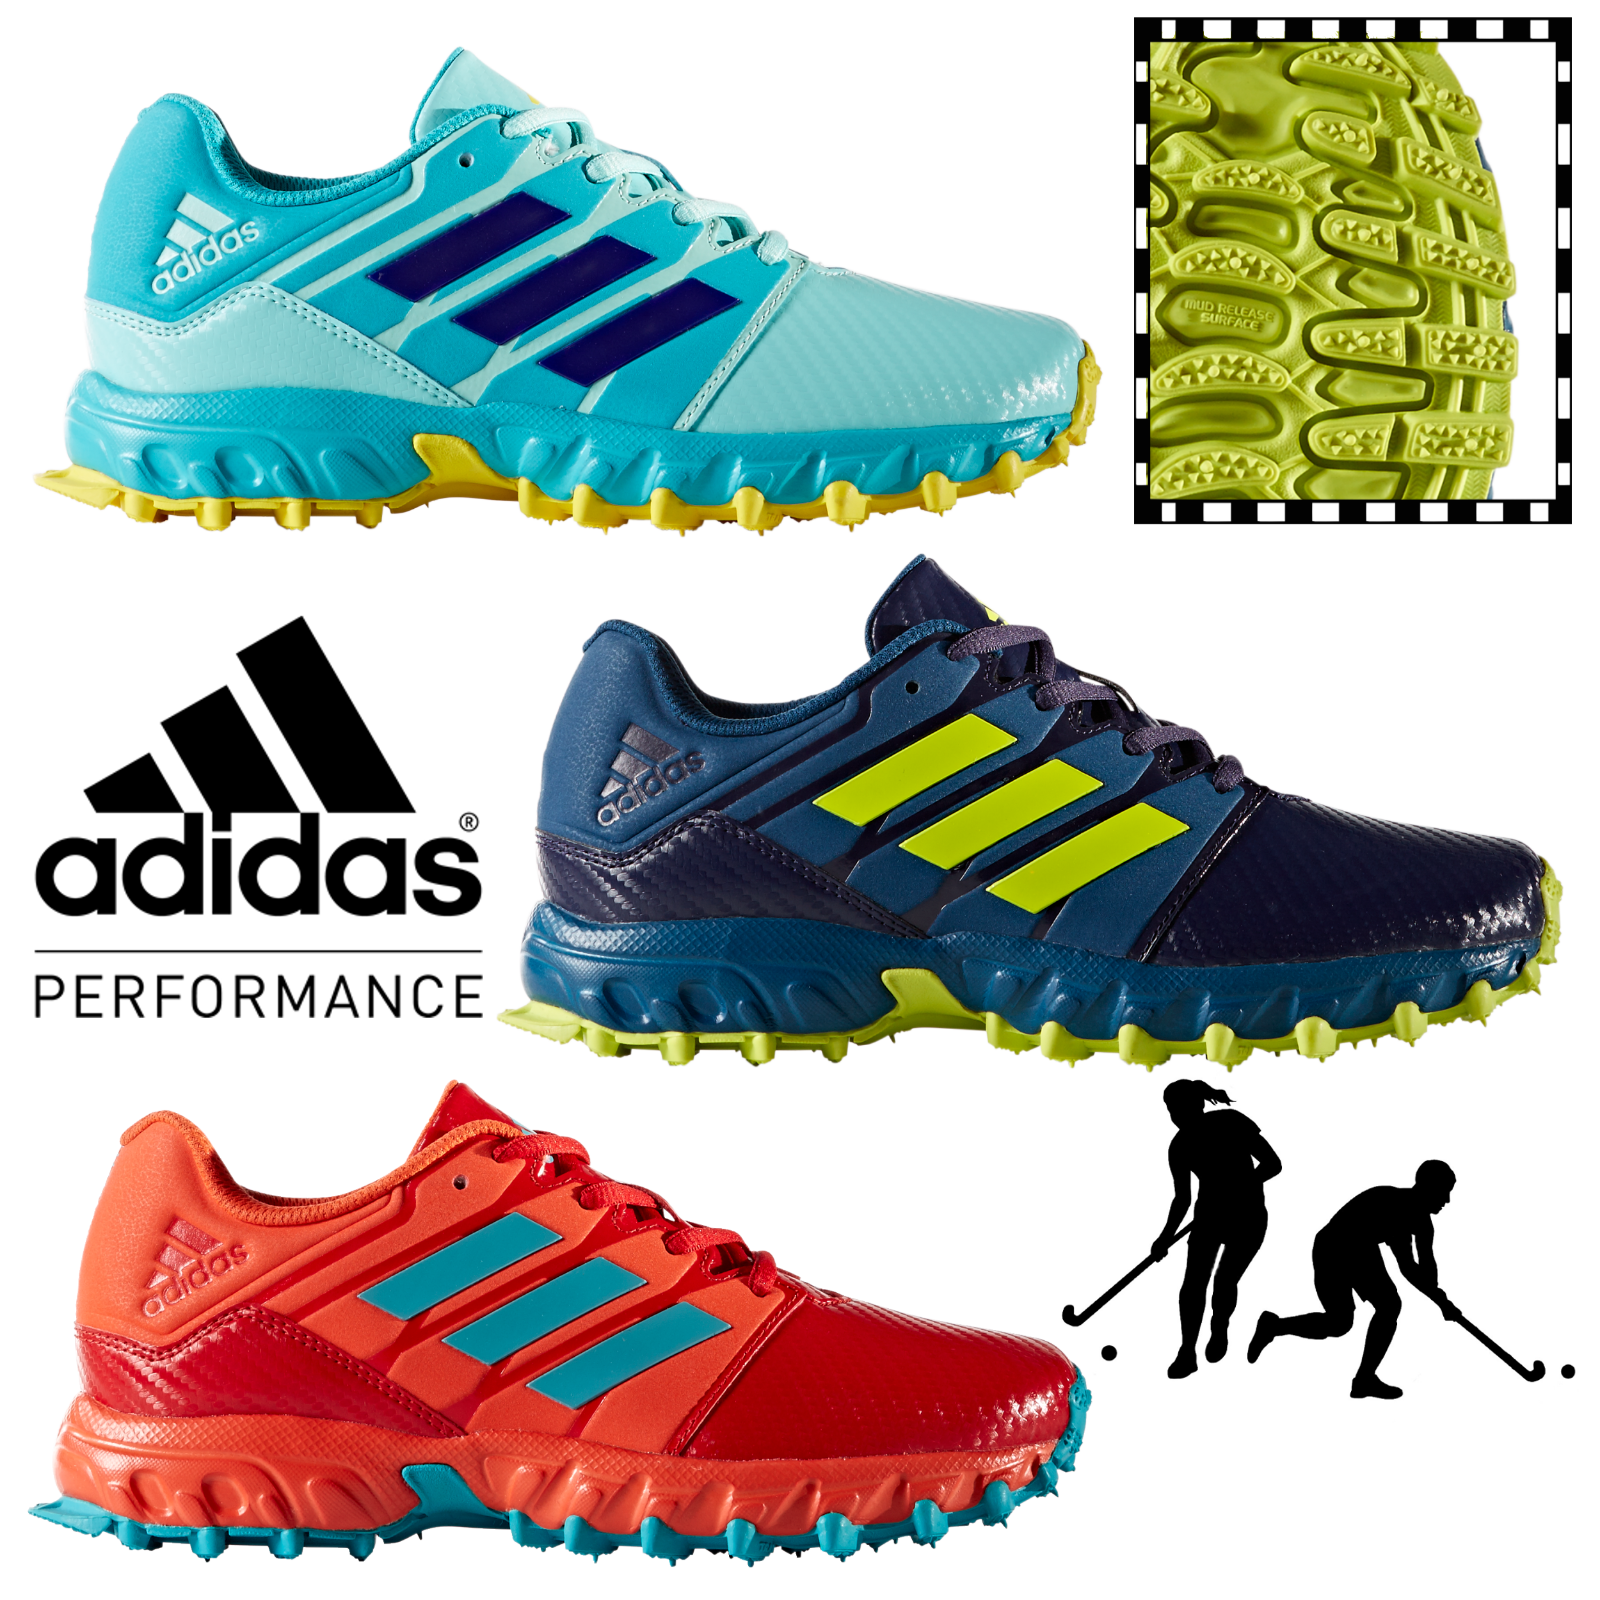 e238e423aa8 Details about adidas Lux Pro Performance Field Hockey Shoes Womens Kids  Sports Trainers